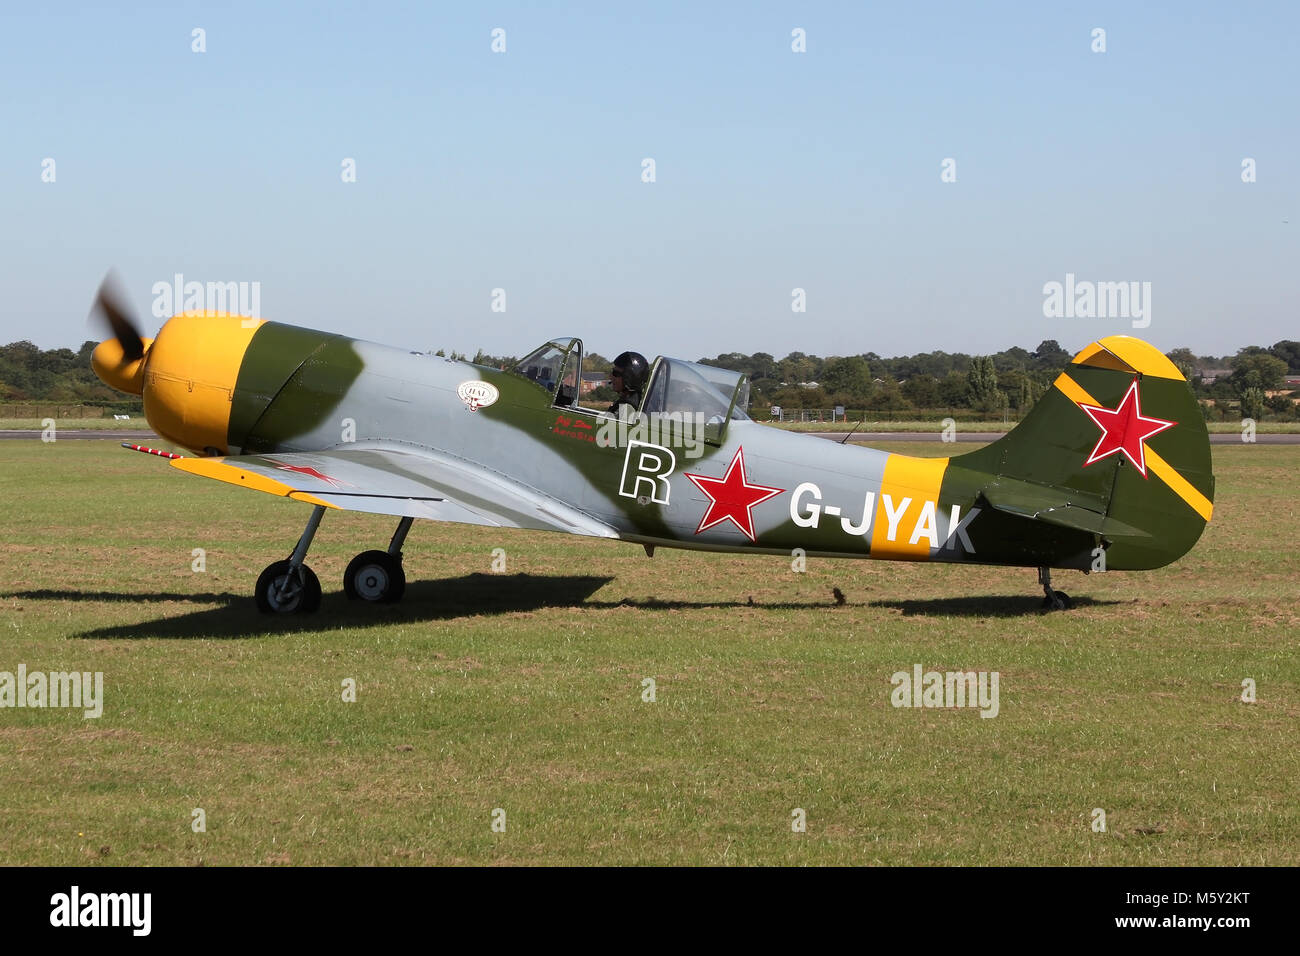 A privately owned Yakovlev Yak-50 taxiing out at the small airport of North Weald in Essex, UK. This aircraft is - Stock Image